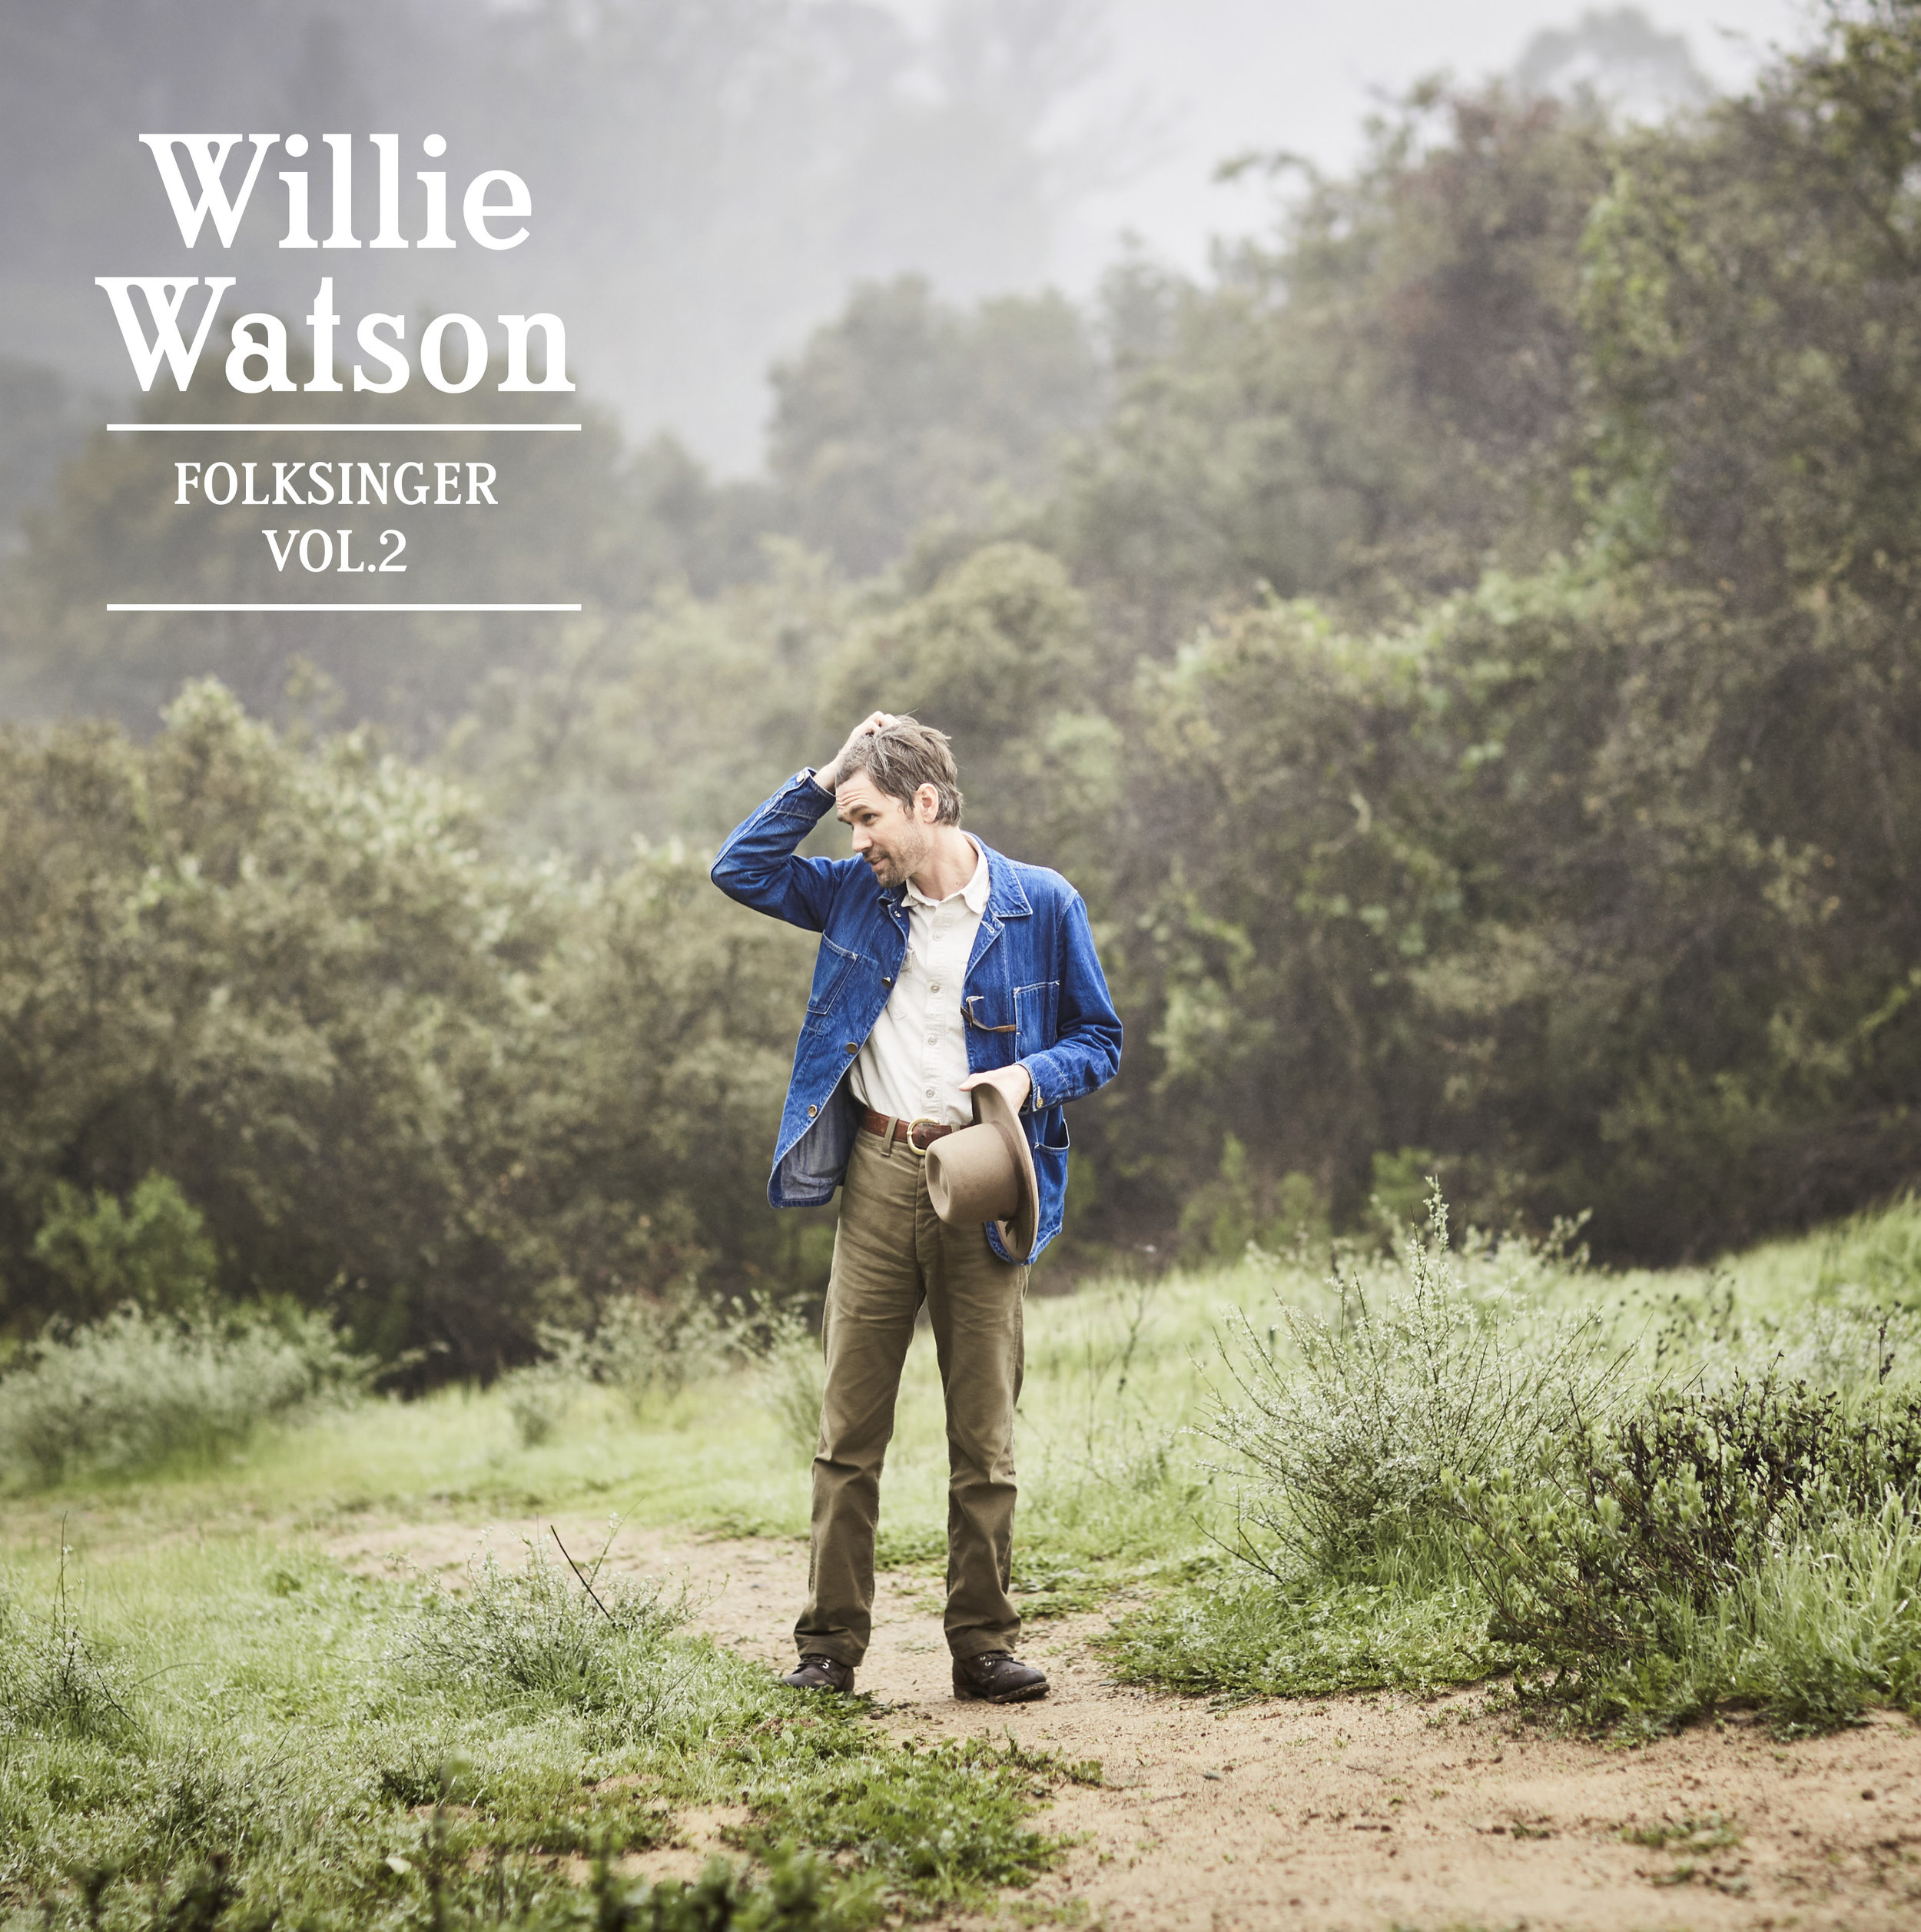 Willie+Watson+&+album+design+|+tomasdottir.+|+lartwork+design,+vinyl+cd,+folksinger+vol2,+branding,+folky,+artwork,+retro+packaging